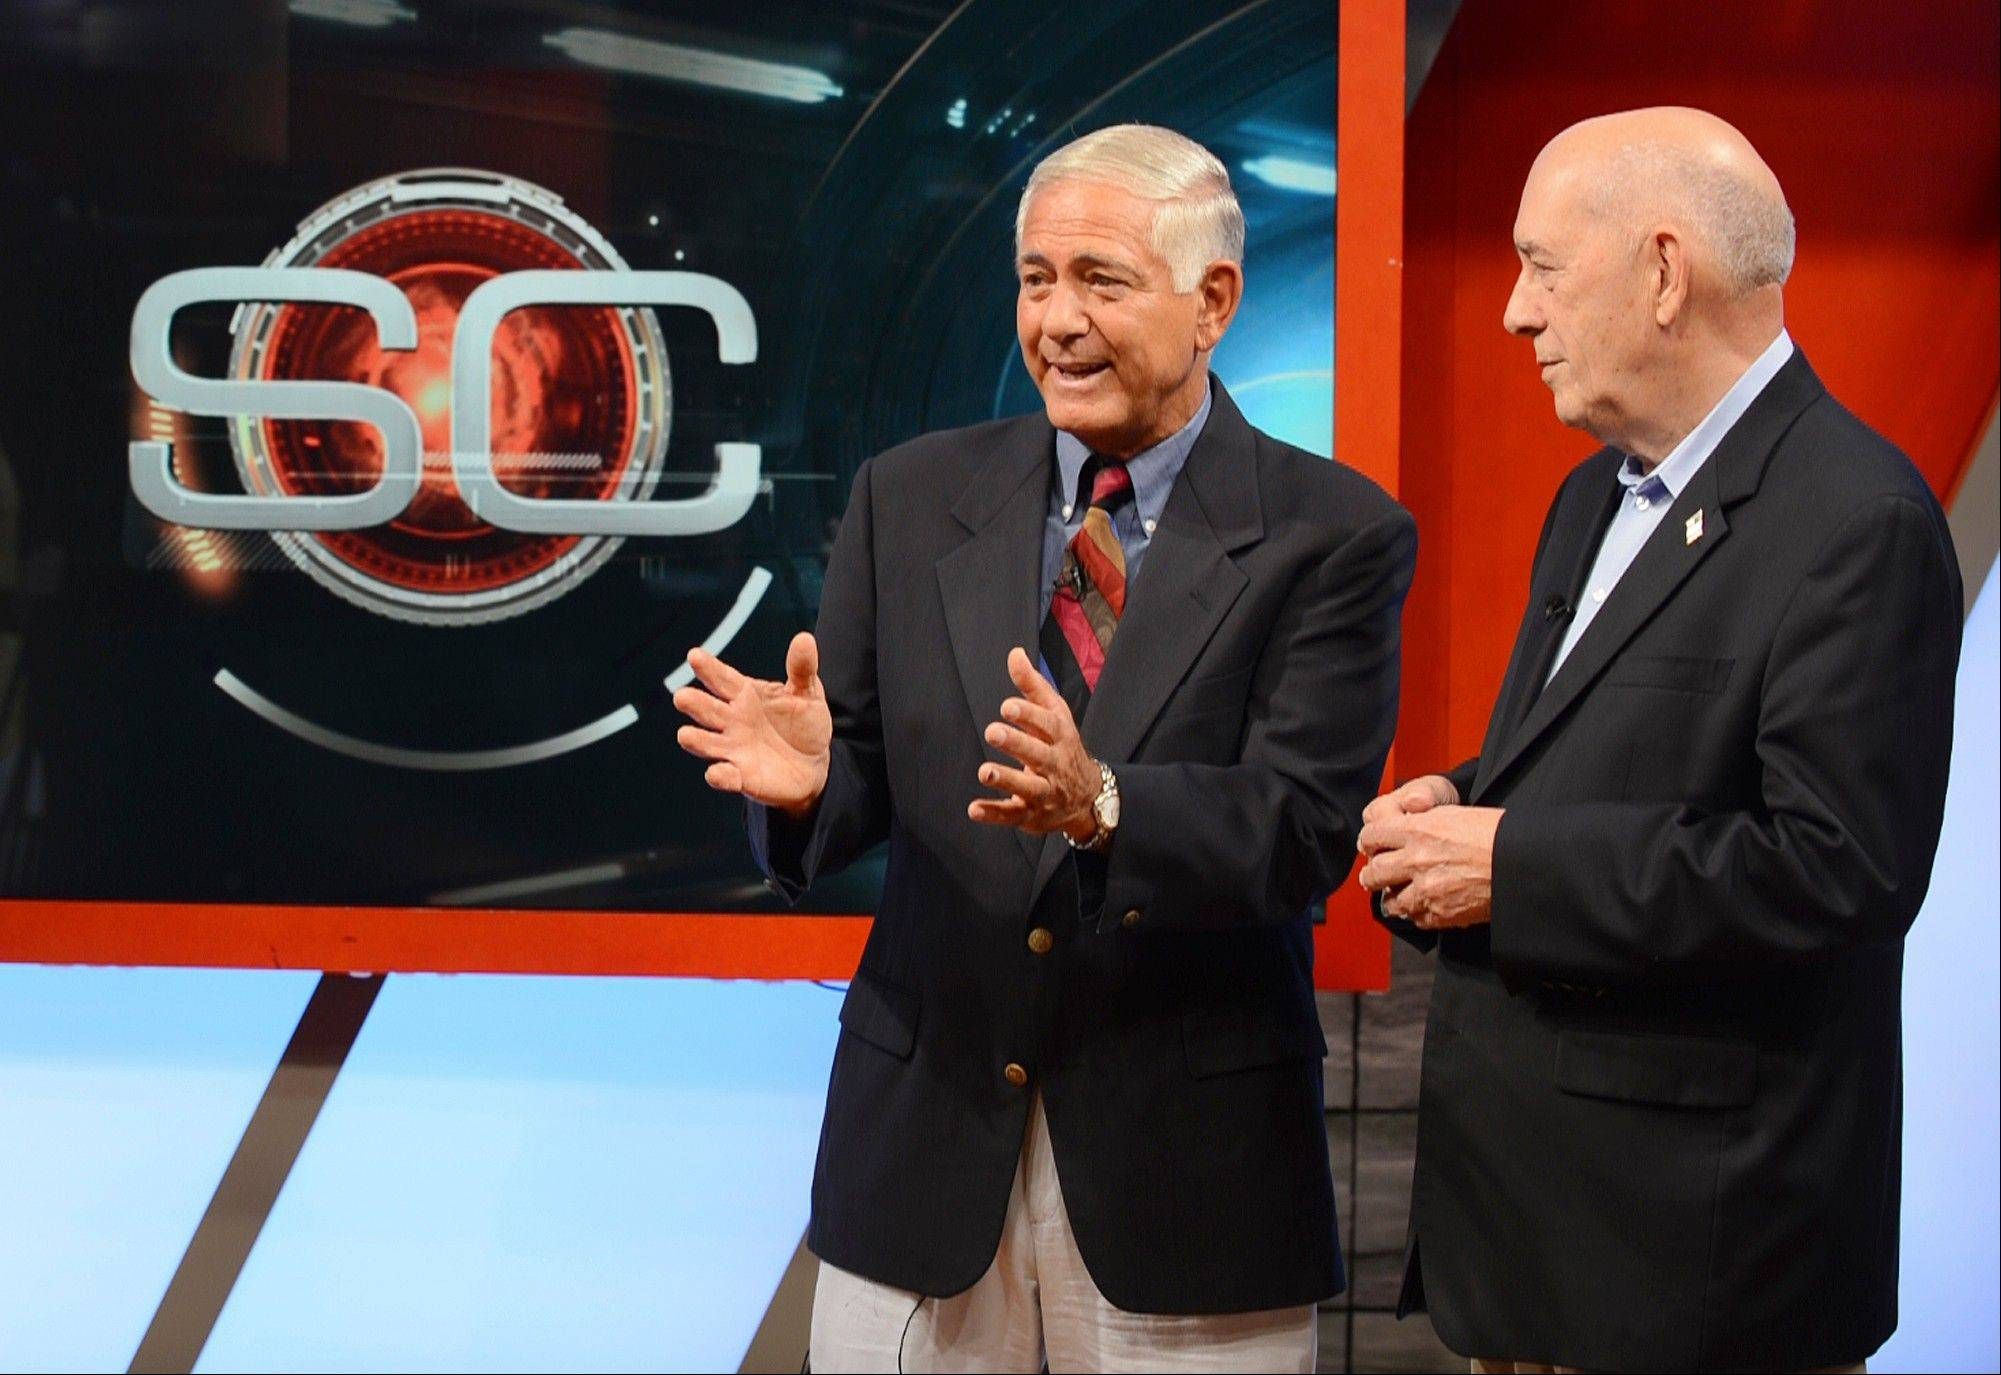 Original SportsCenter host George Grande, left, and ESPN founder Bill Rasmussen promote the 50,000th episode of SportsCenter, which will air Thursday.